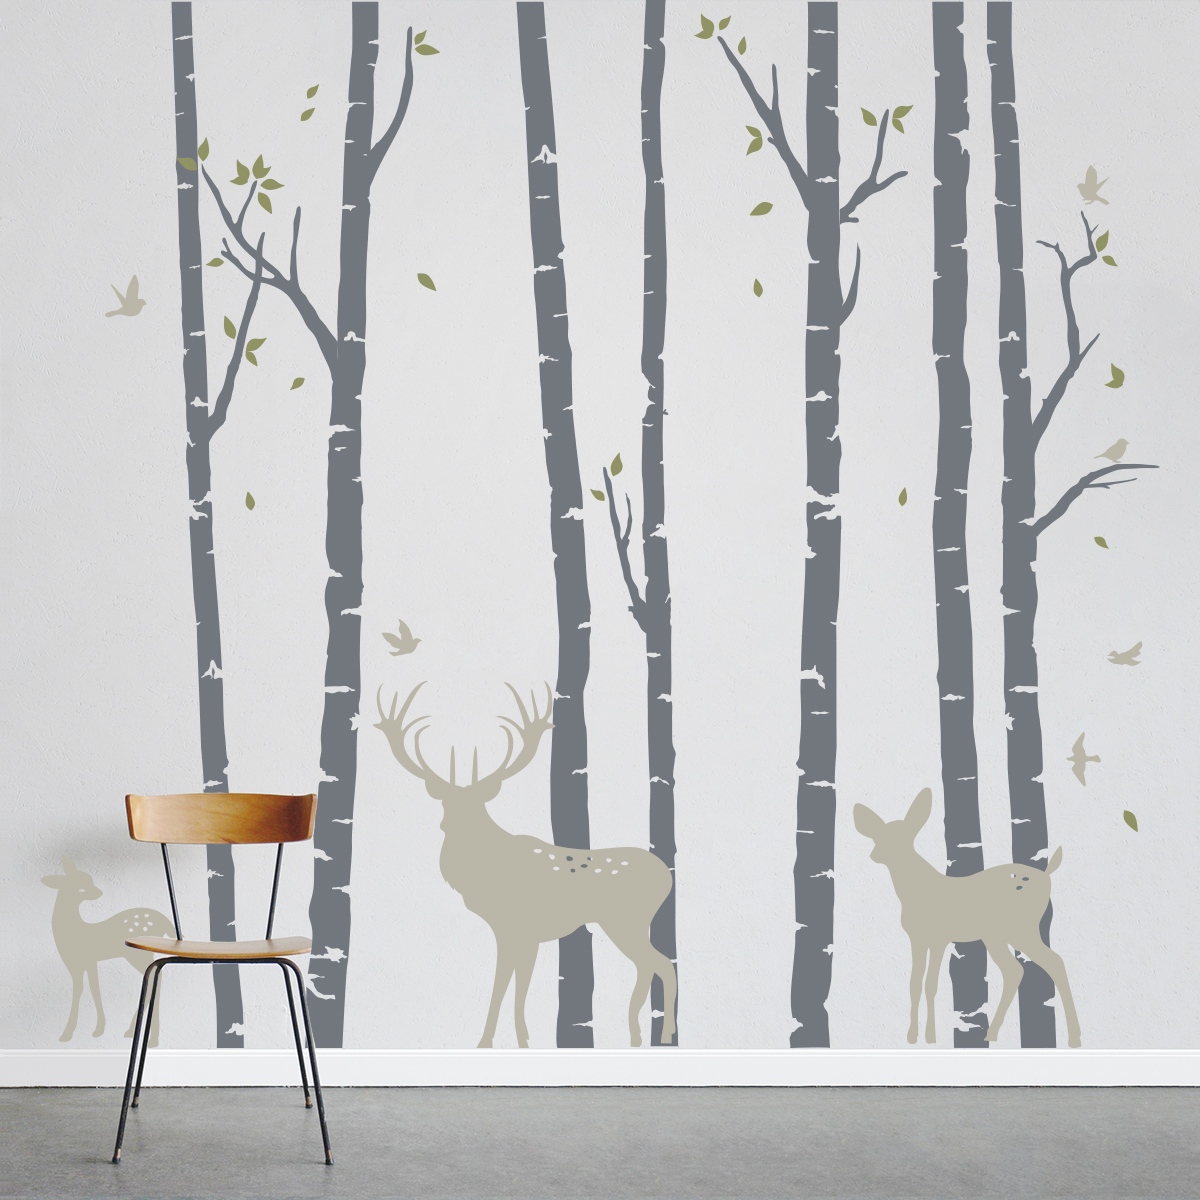 Bon Birch Trees Forest With Deer Wall Decal